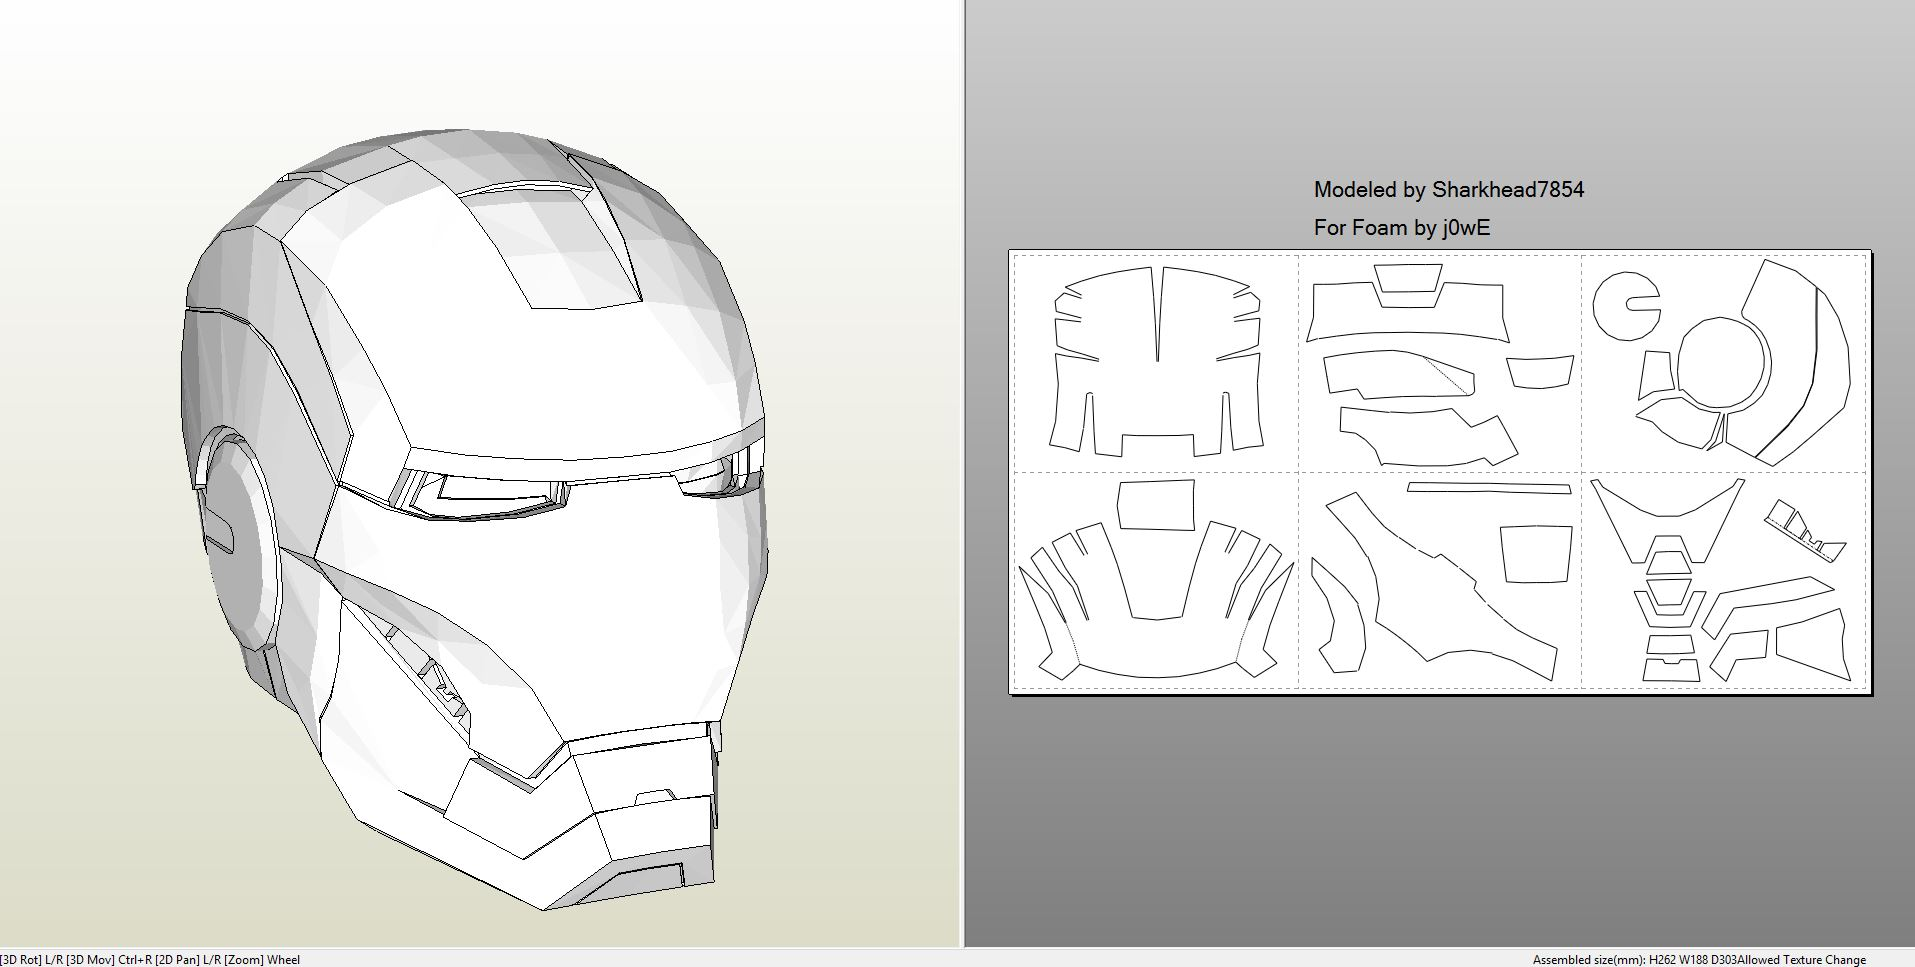 Foamcraft  pdo file template for Iron Man – Mark 4 & 6 Full Armor +